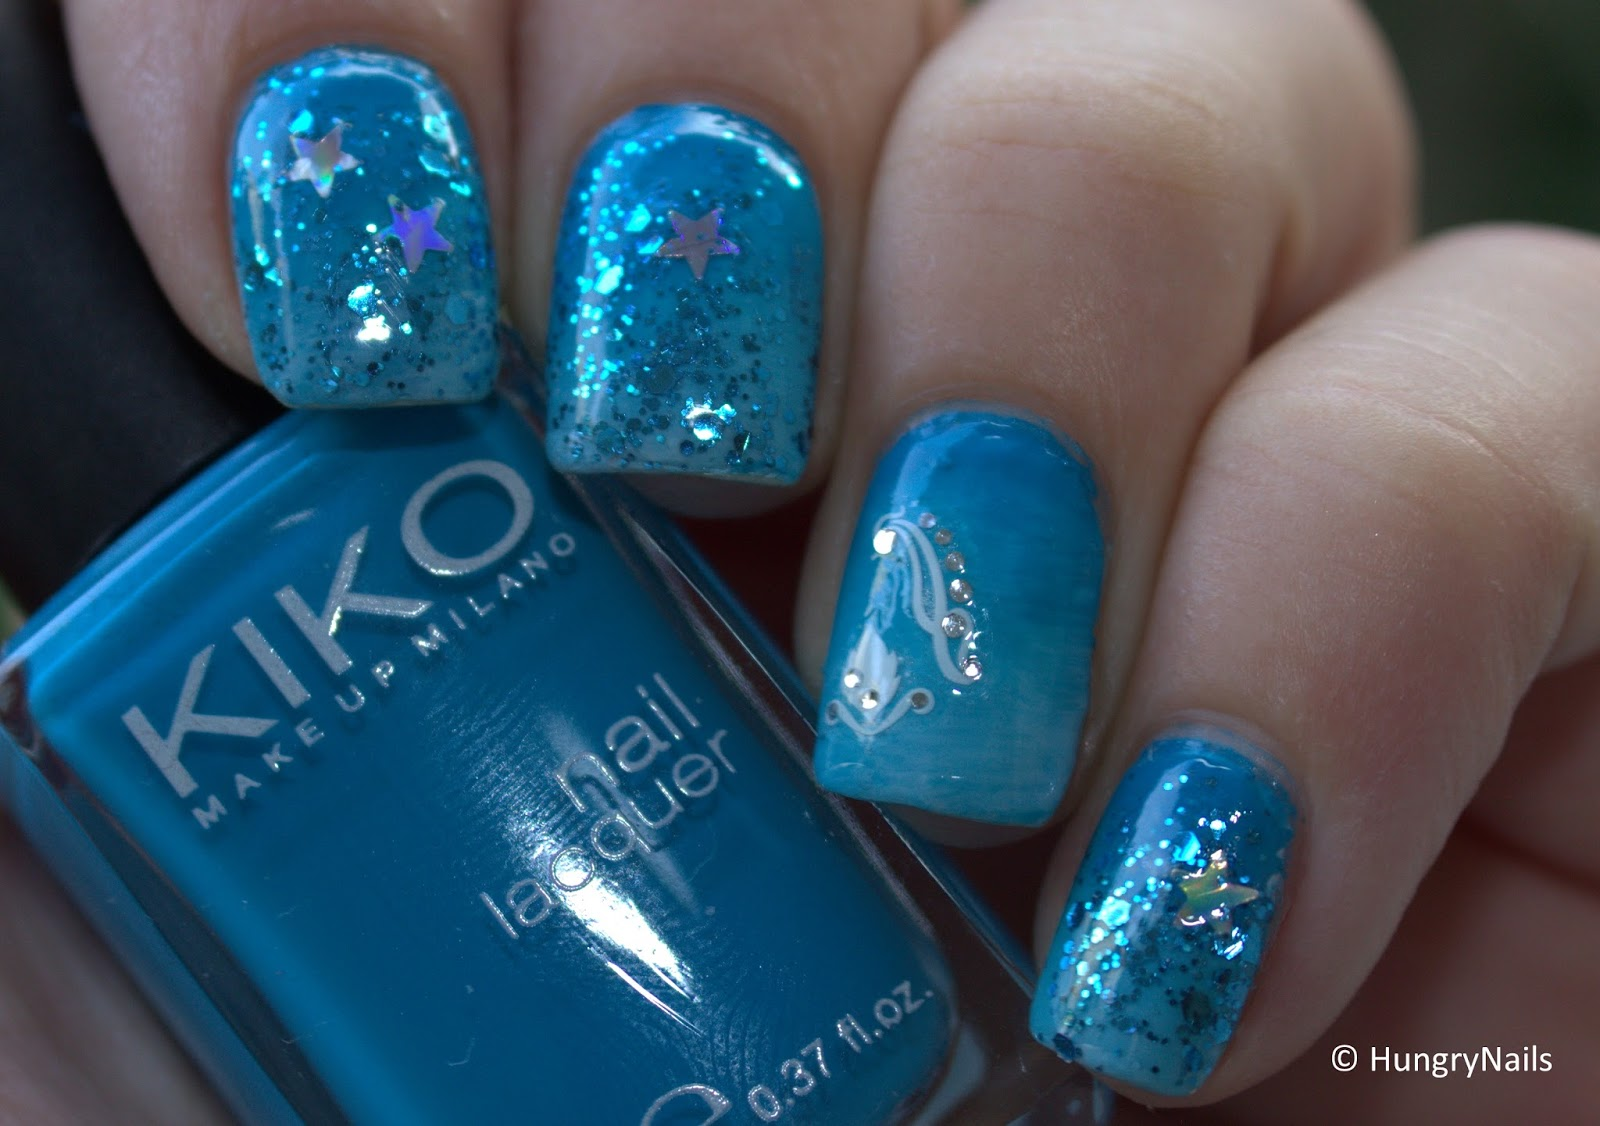 http://hungrynails.blogspot.de/2014/08/blue-friday-gradient-nails.html